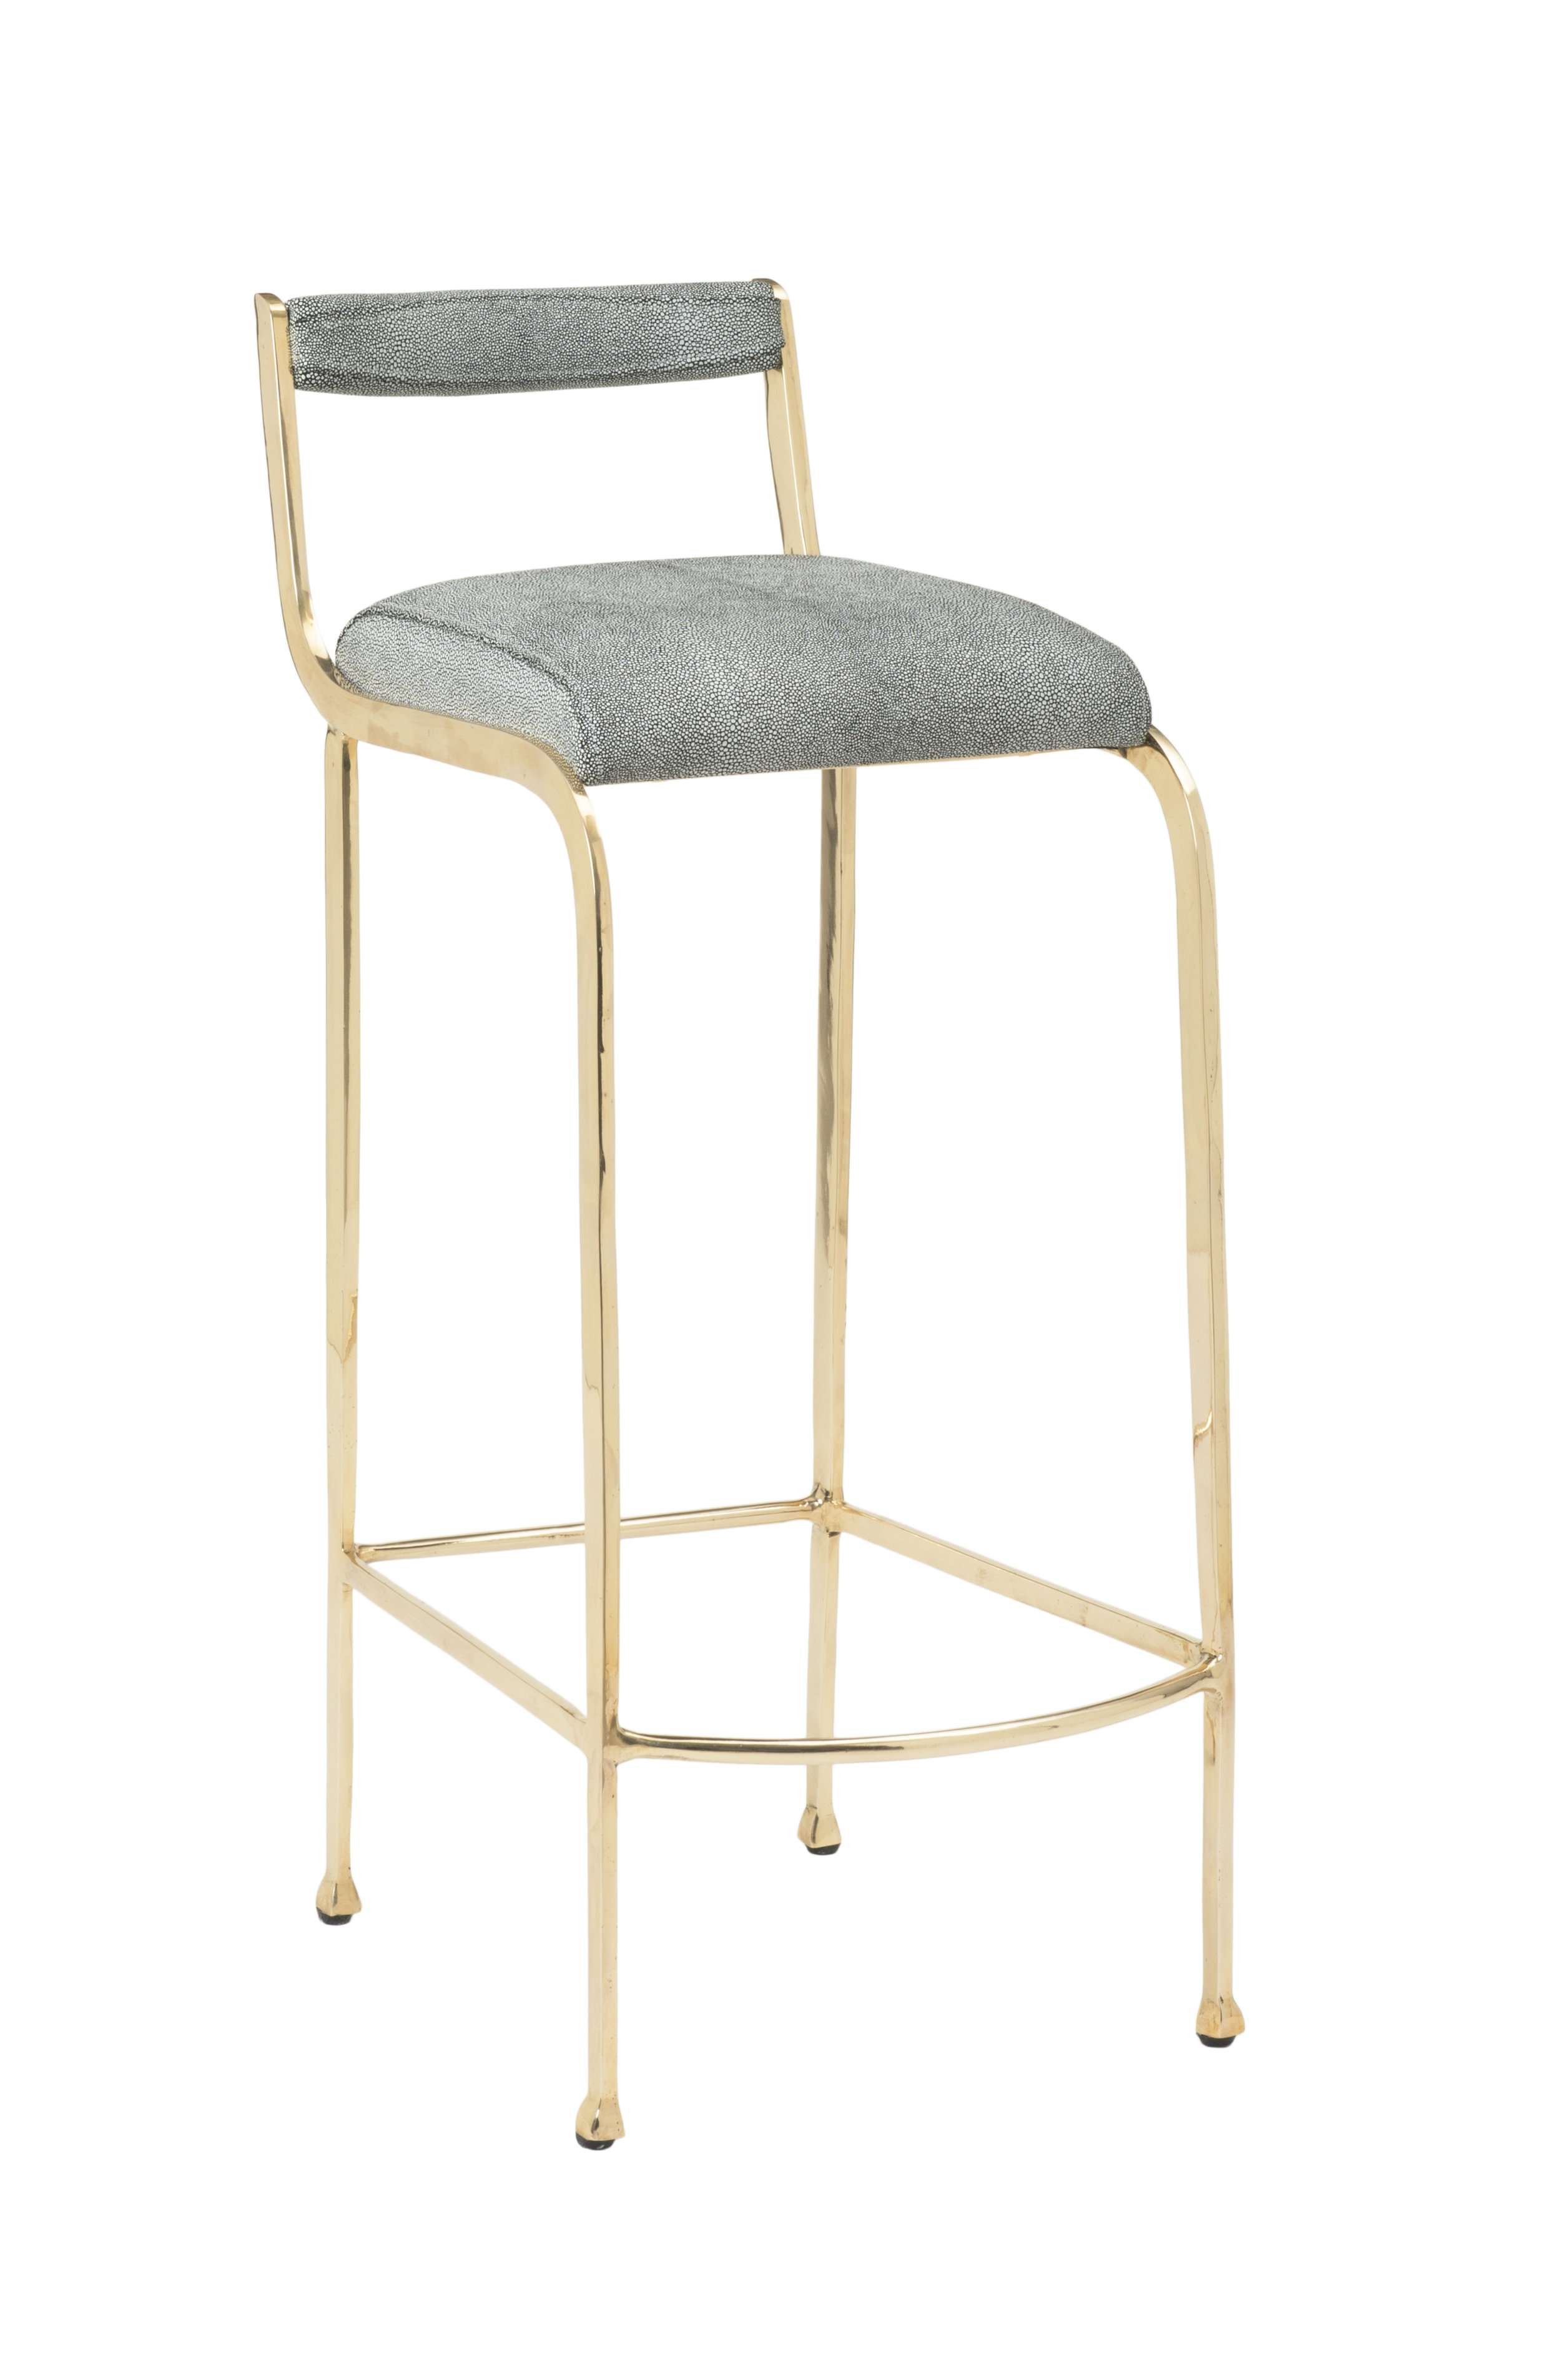 forged_bronze_stool_silo.jpg